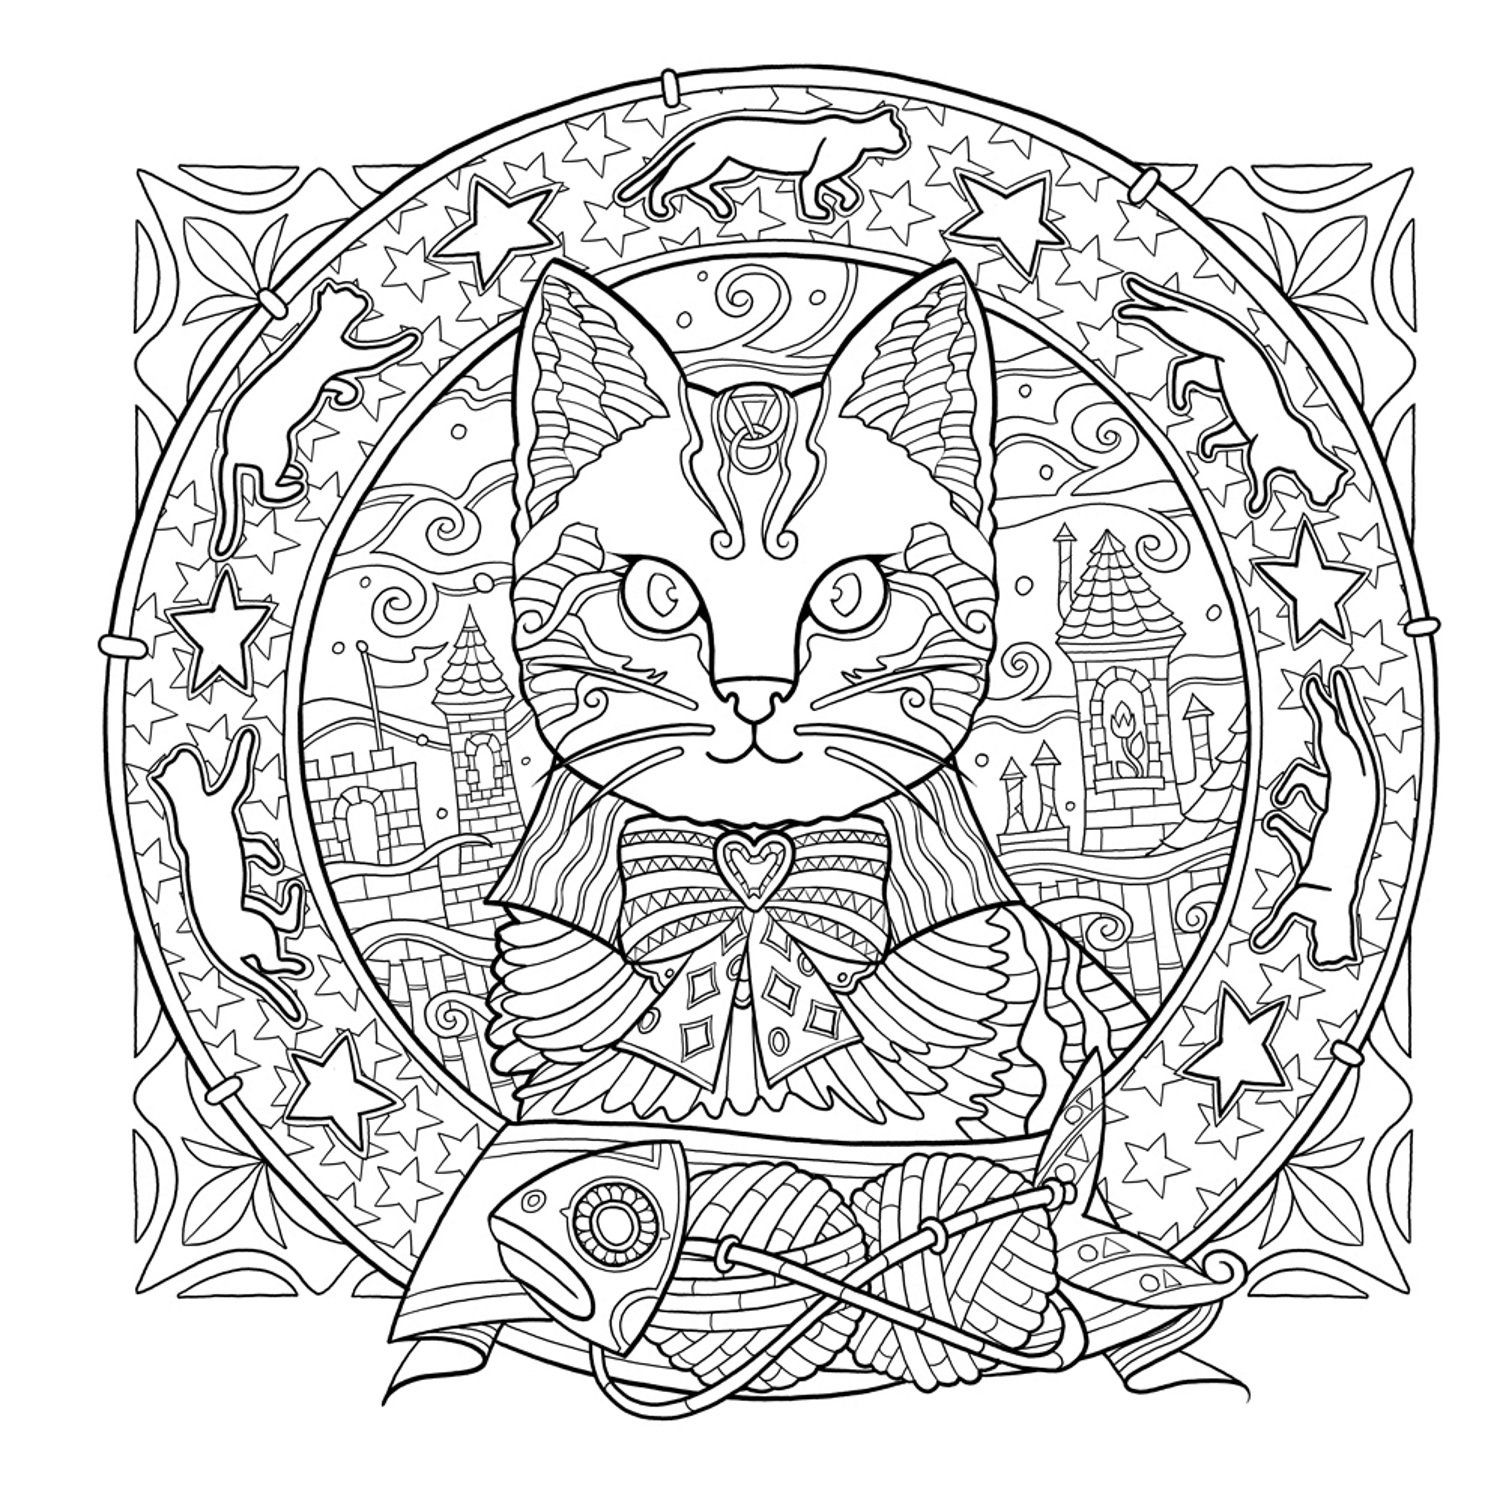 Coloring book kittens - Mystical Cats In Secret Places A Cat Lover S Coloring Book Amazon De